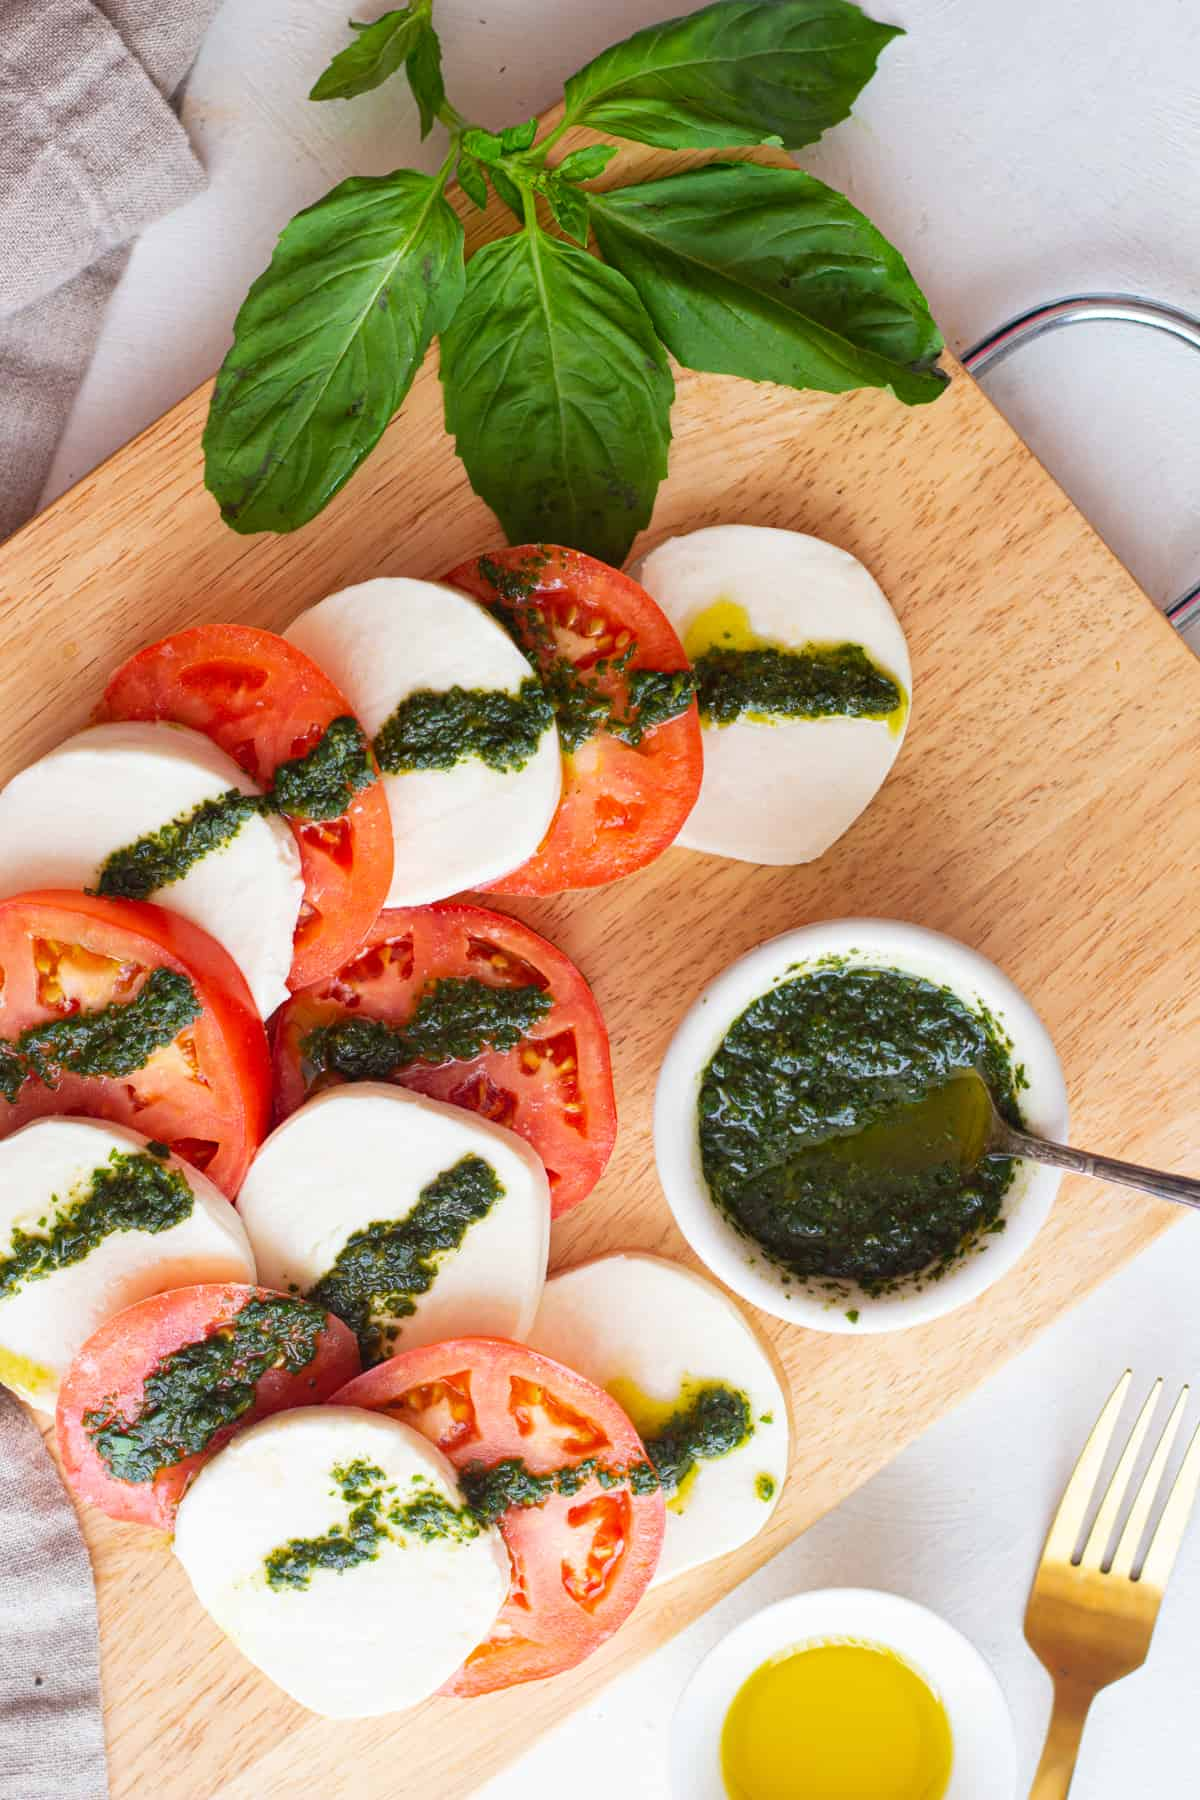 This basil olive oil is also perfect for caprese salad.